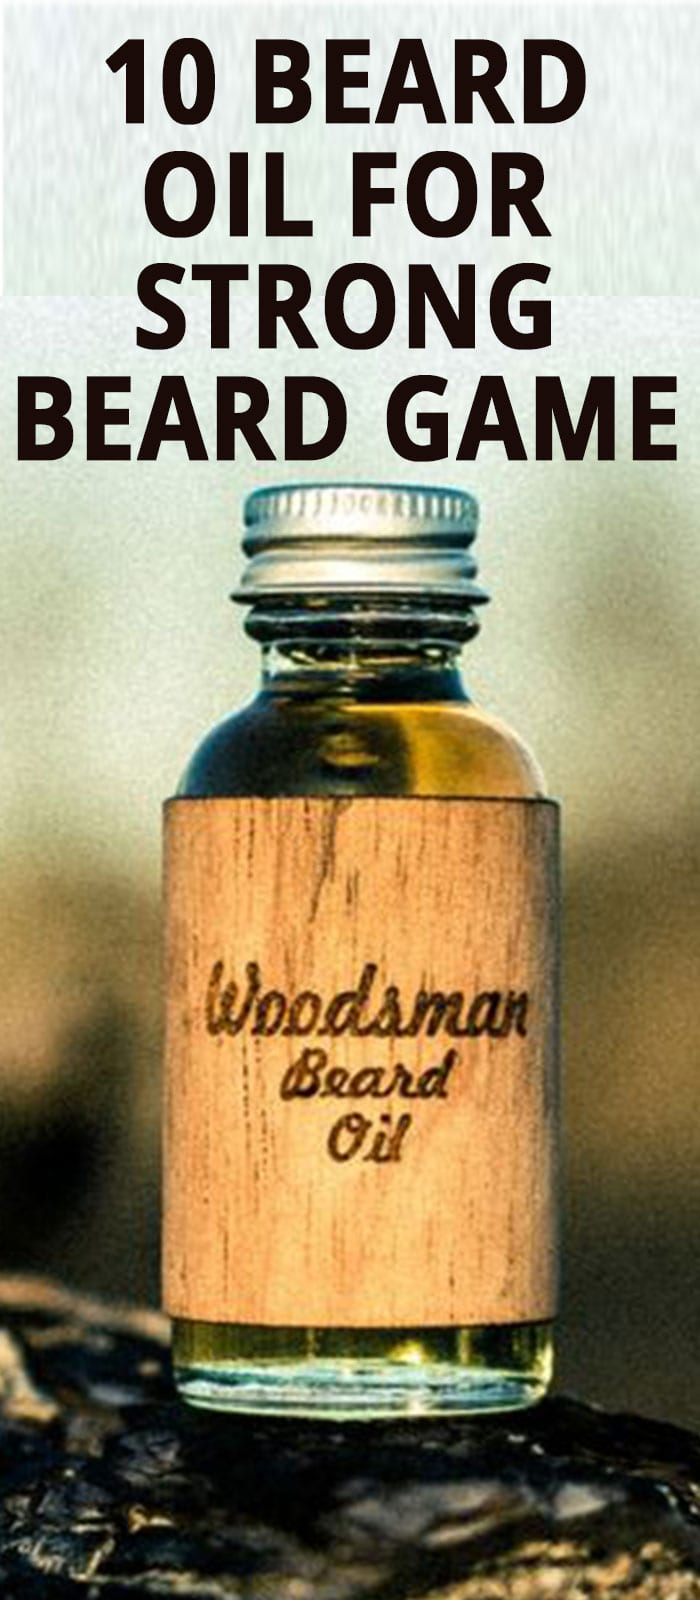 10-BEST-BEARD-GROWTH-OIL-FOR-STRONG-BEARD-GAME